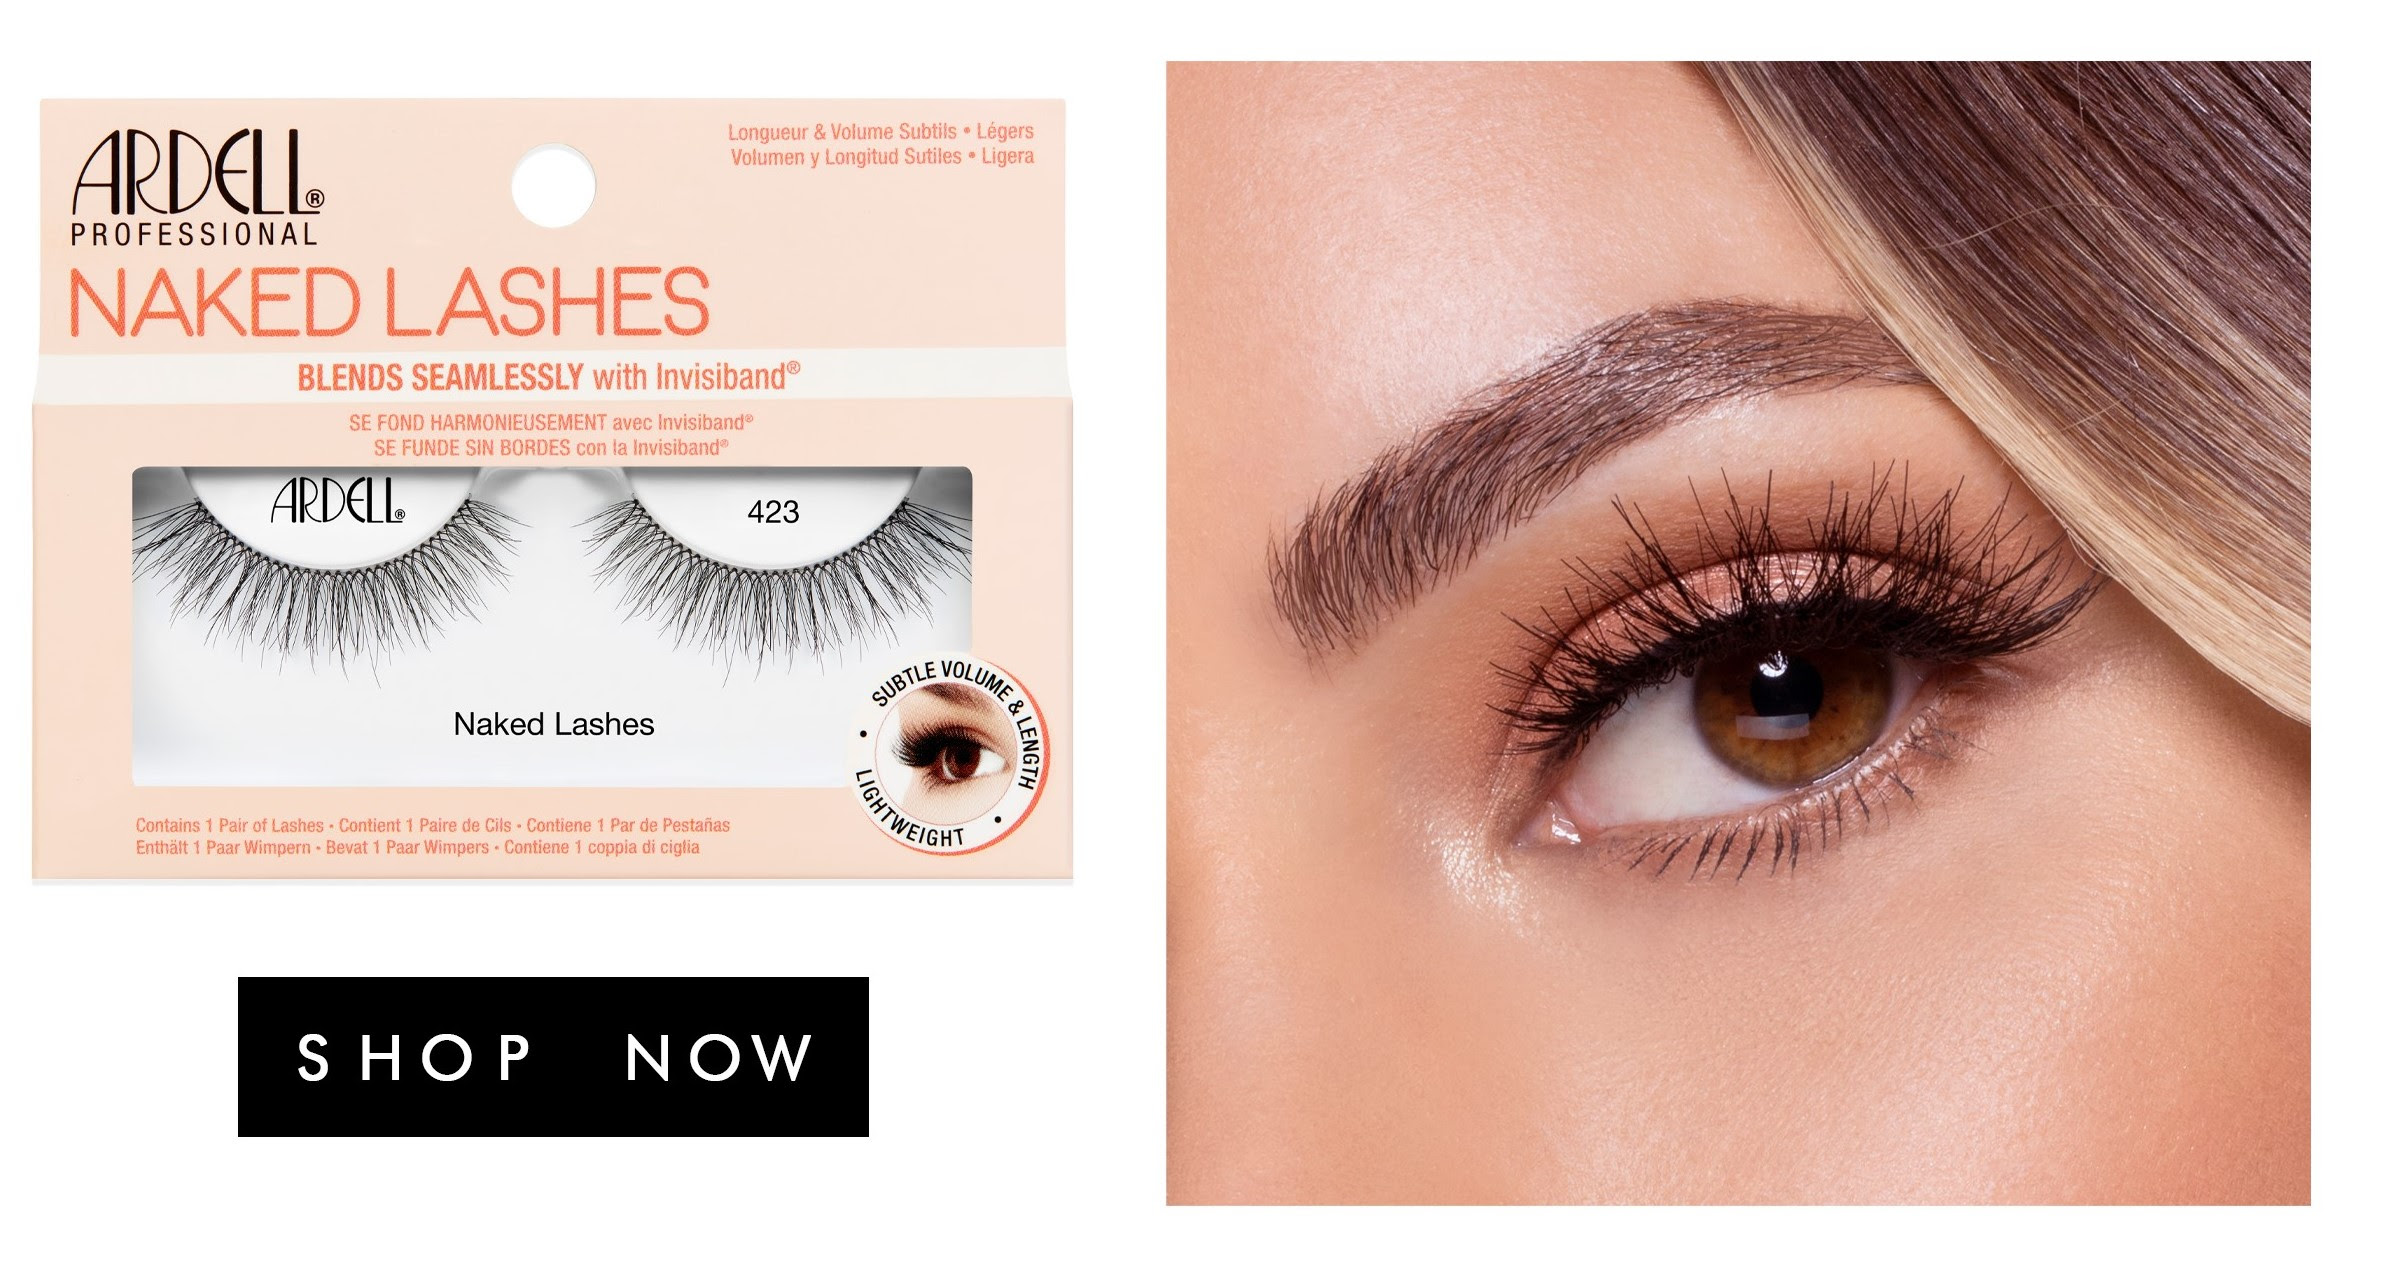 ardell naked lashes blends seamlessly with your natural lashes with invisibands.